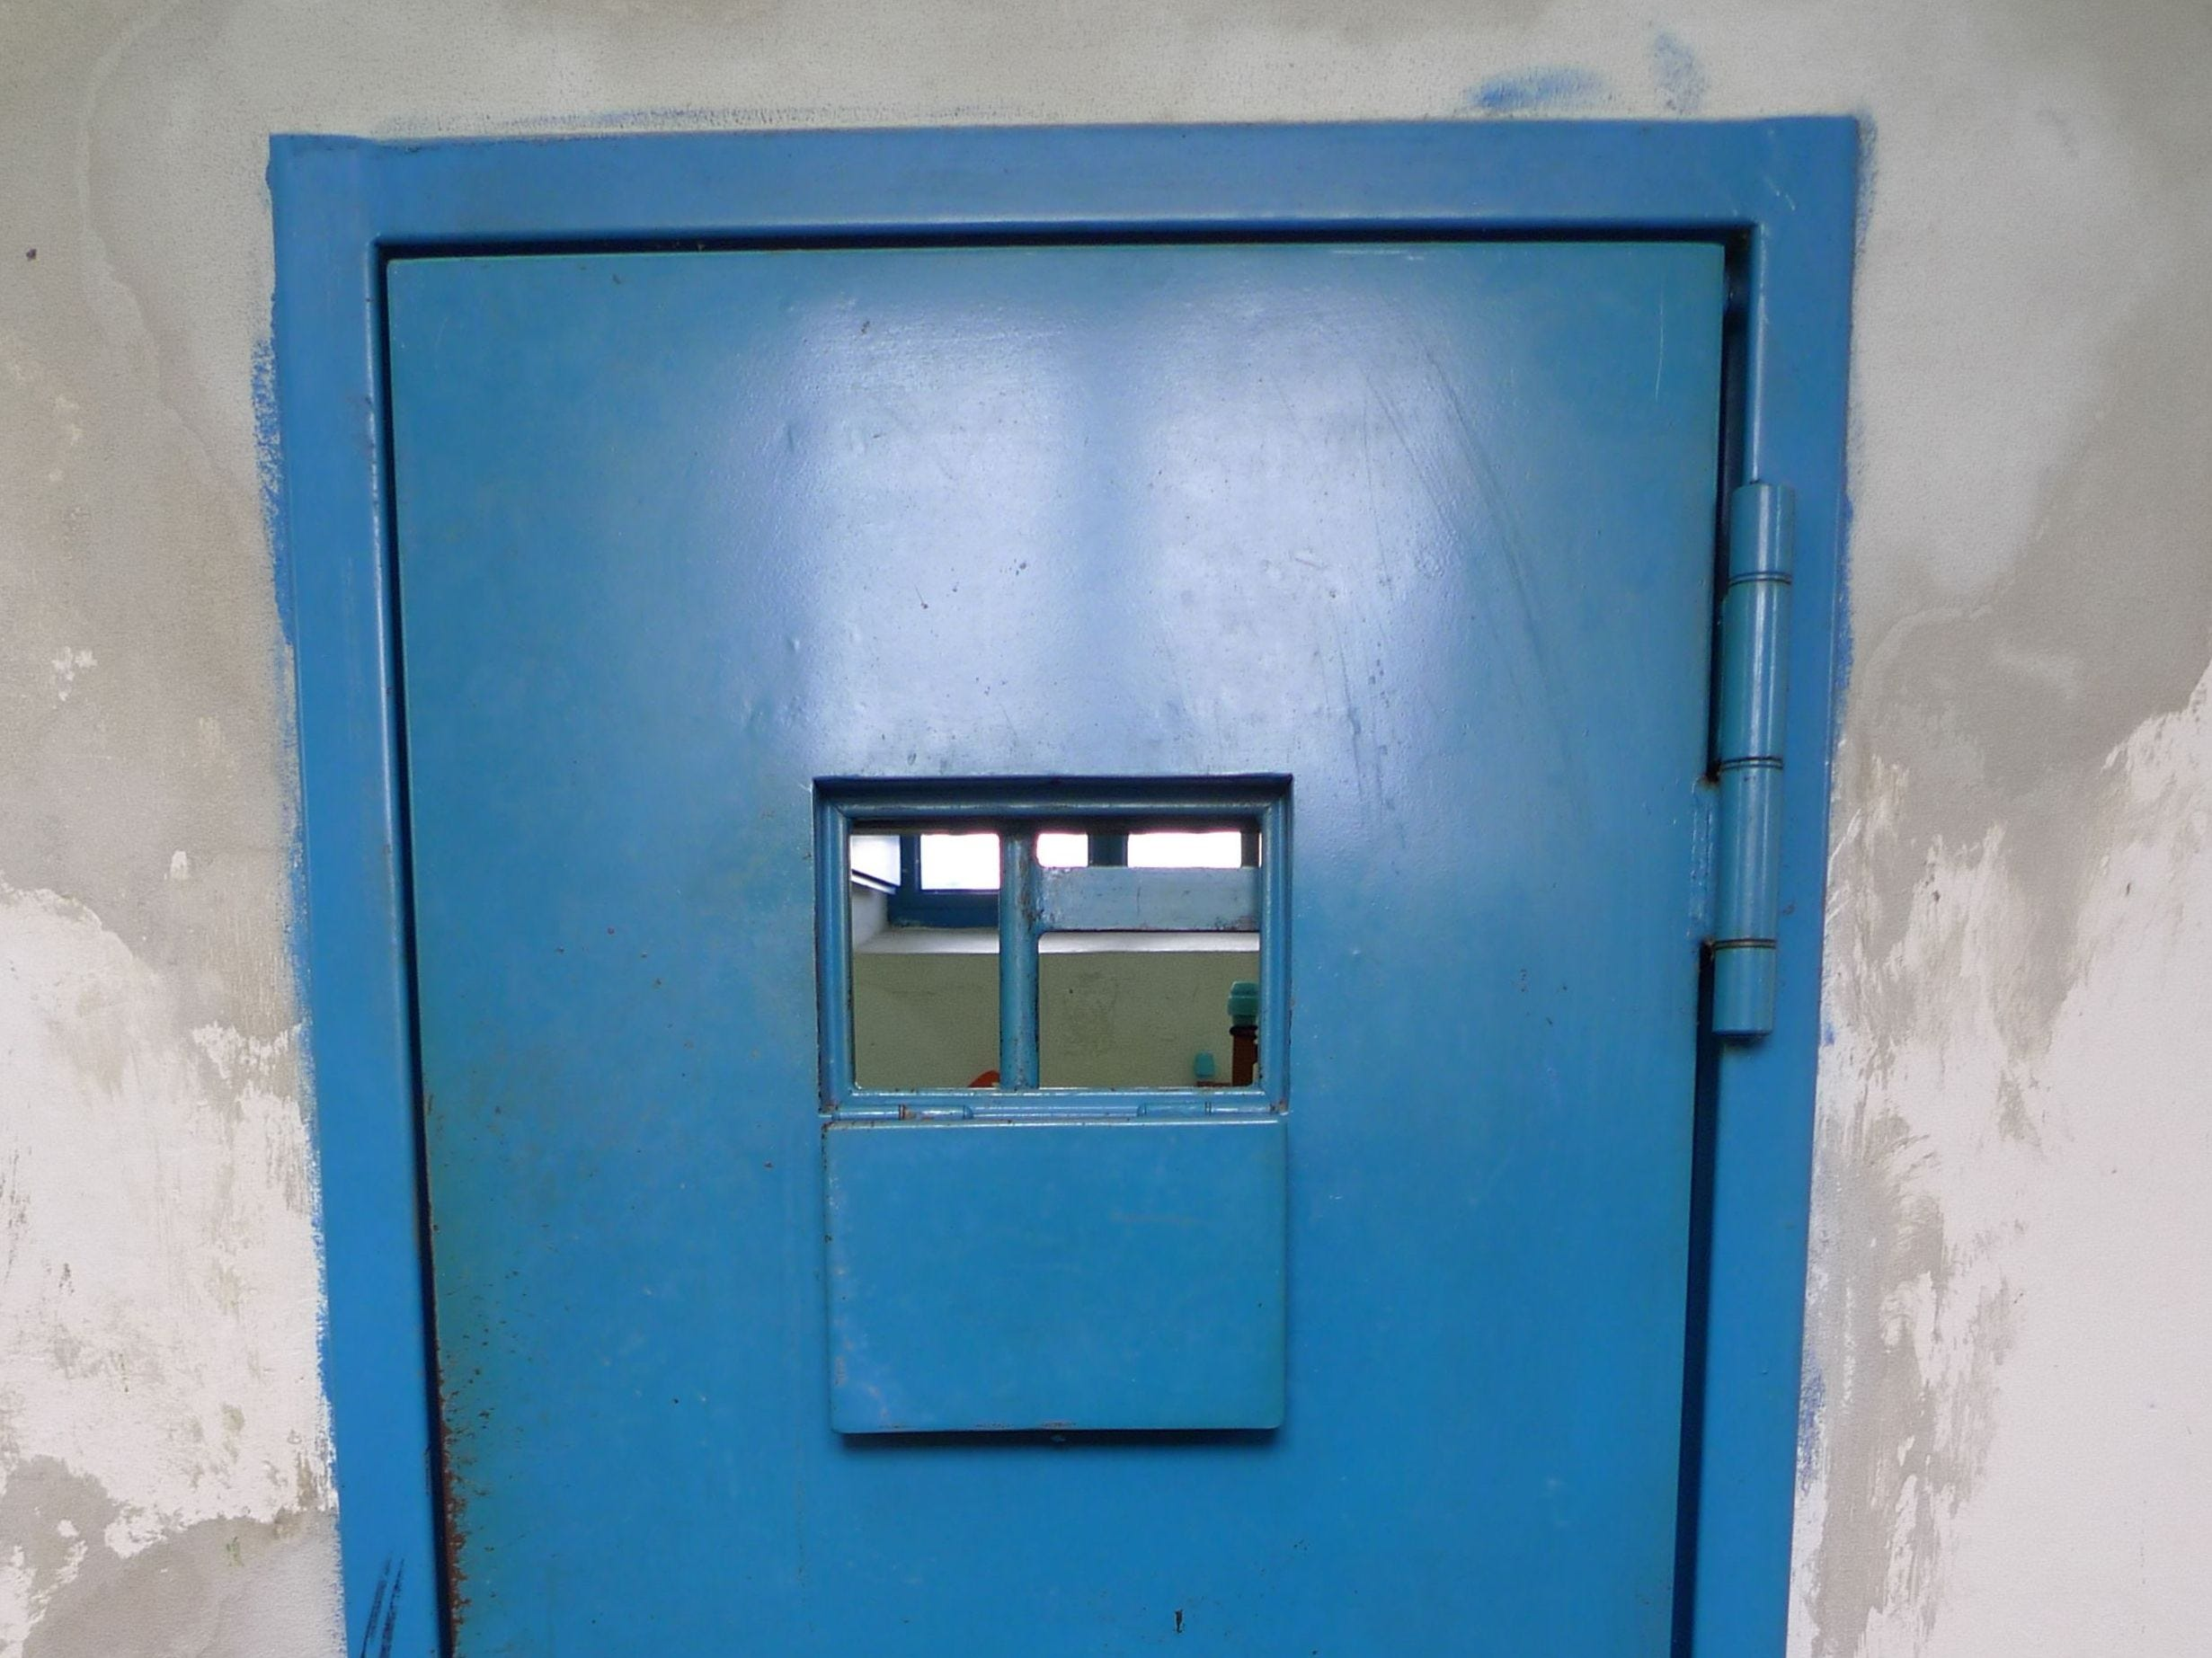 Woman gave birth alone in locked prison cell in 'inexcusable' incident